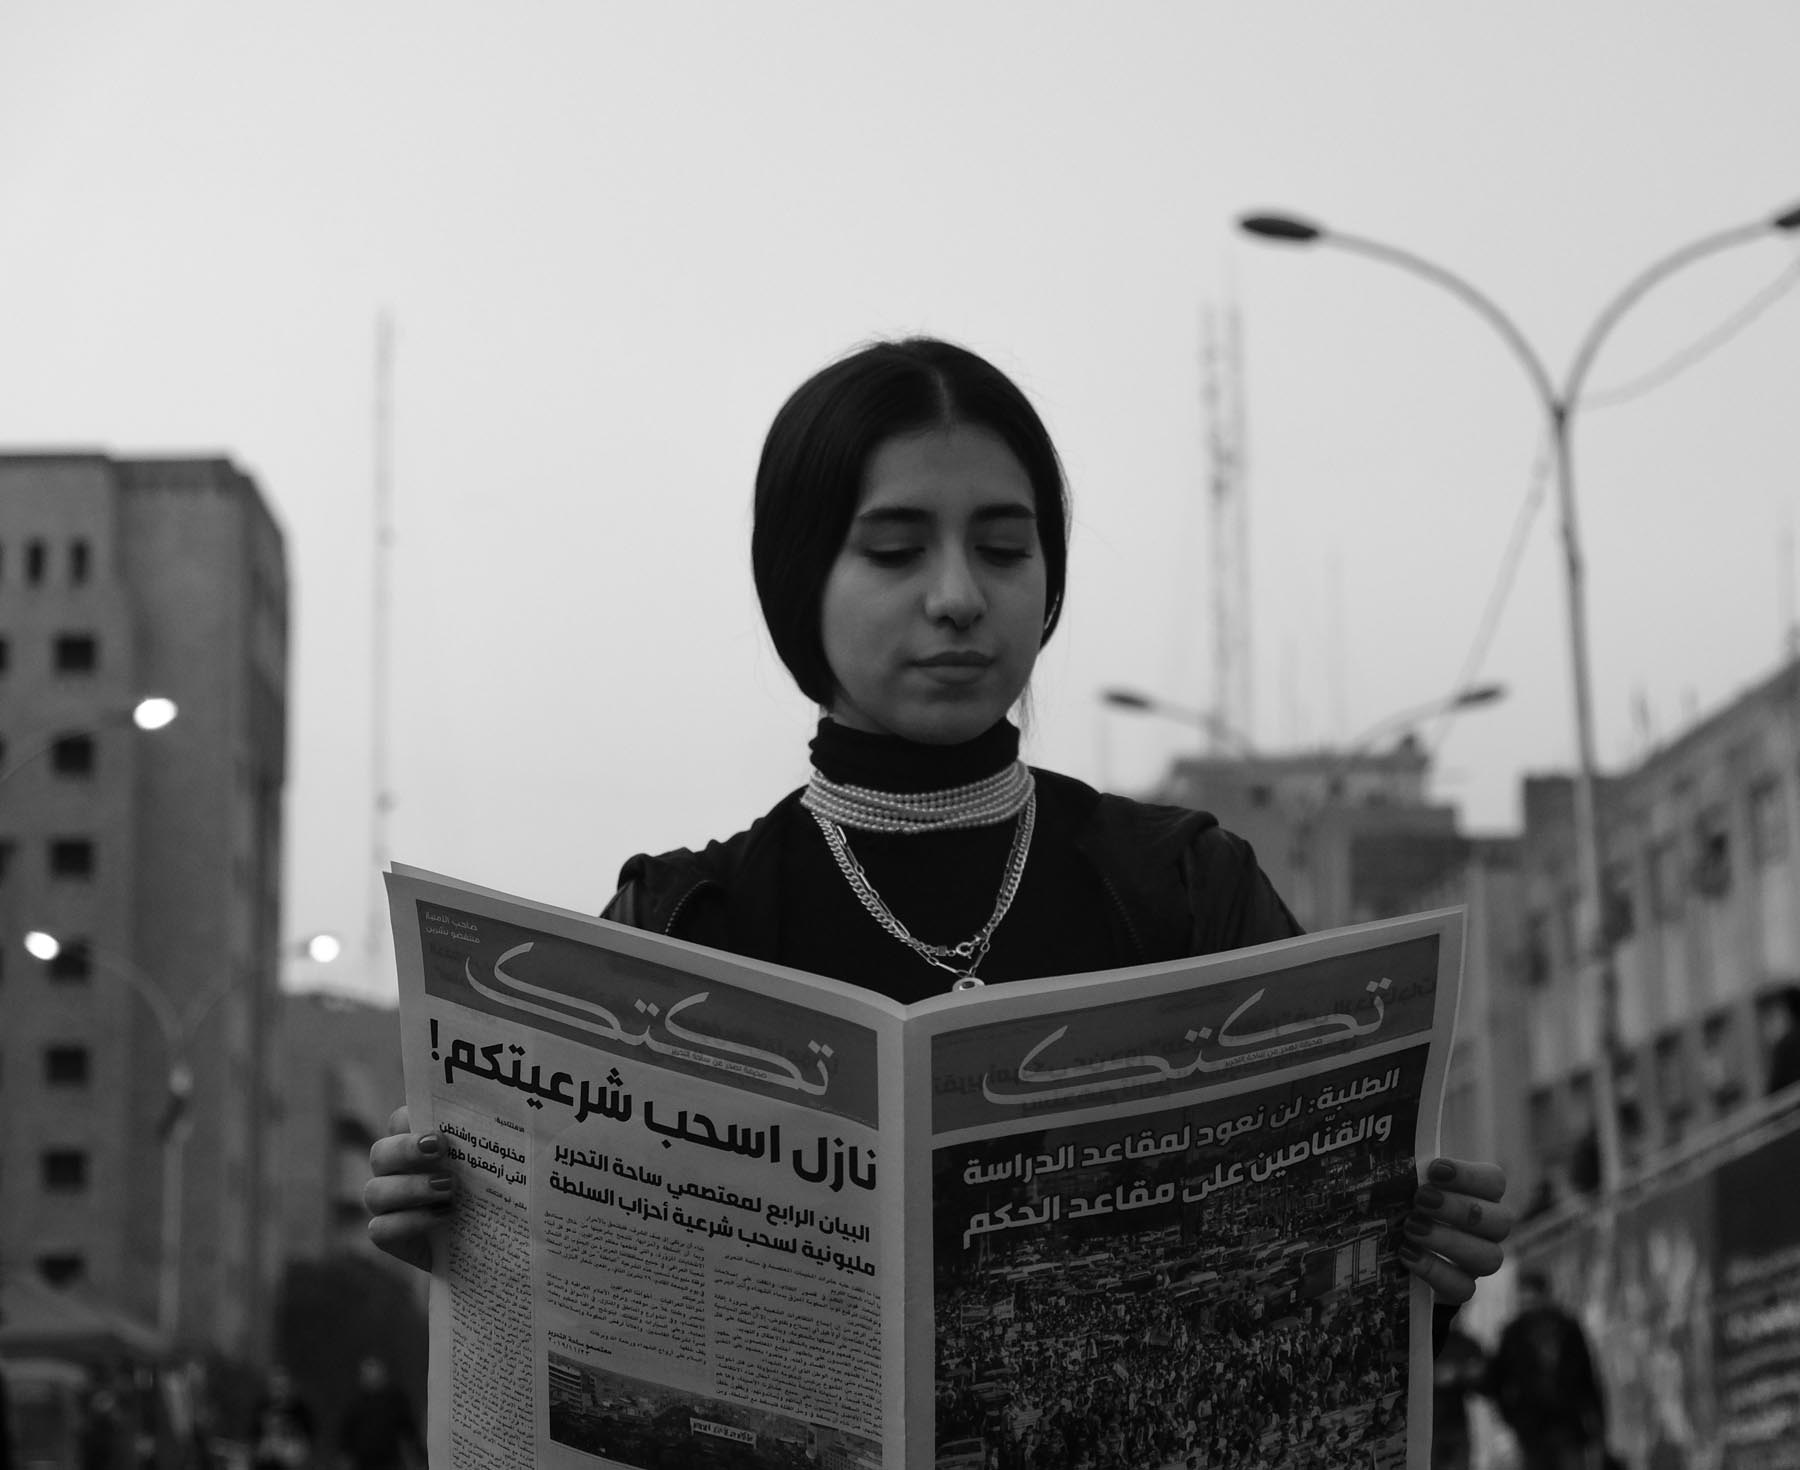 A young woman reads a newspaper near Tahrir Square in Baghdad during protests. (Amir Hazim)